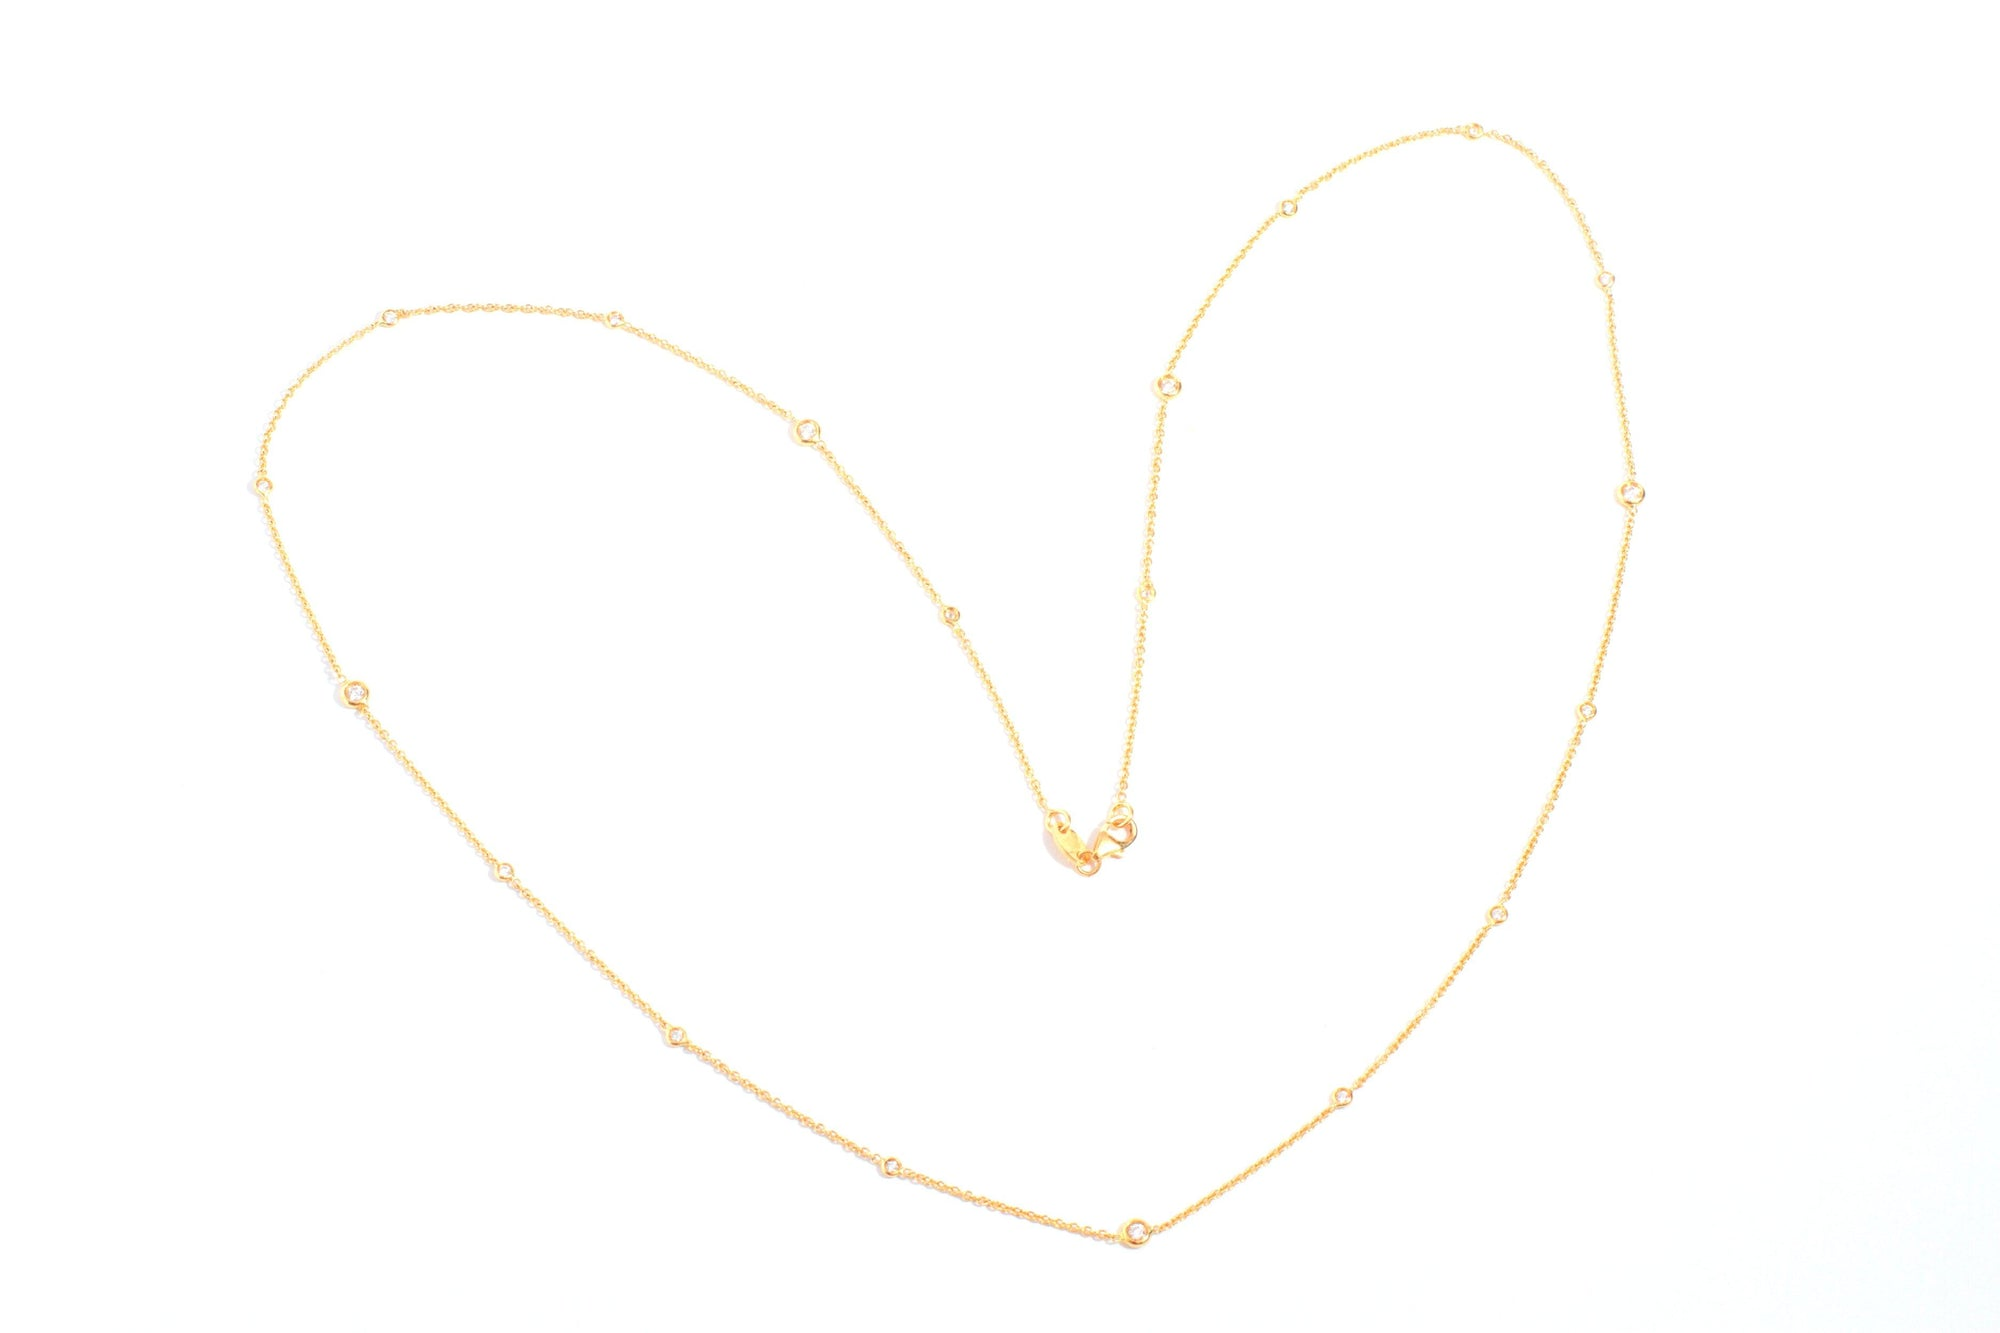 Yellow gold necklace set with white diamonds